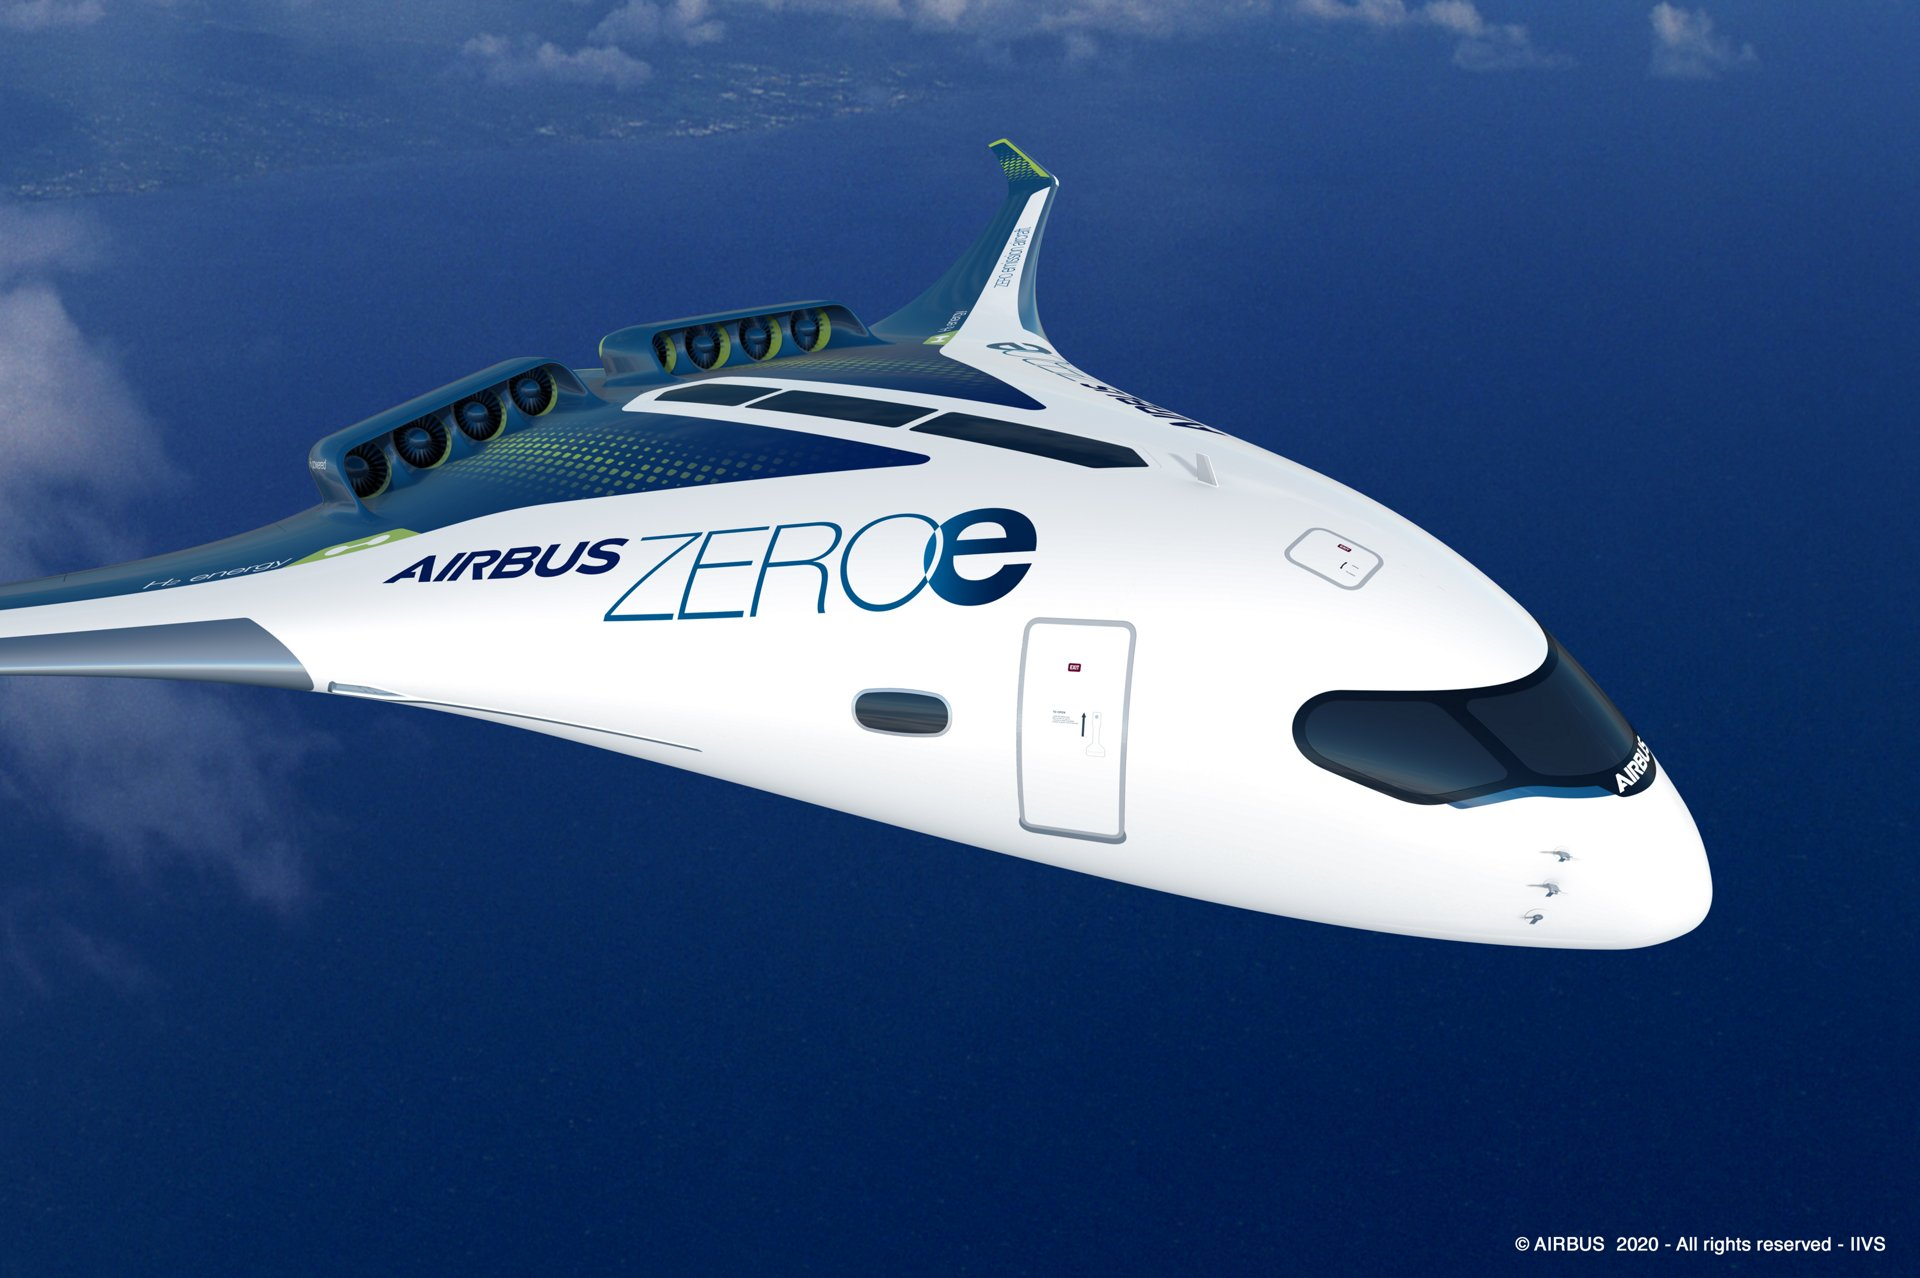 ZEROe is an Airbus concept aircraft. In the blended-wing body configuration, two hybrid hydrogen turbofan engines provide thrust. The liquid hydrogen storage tanks are stored underneath the wings.